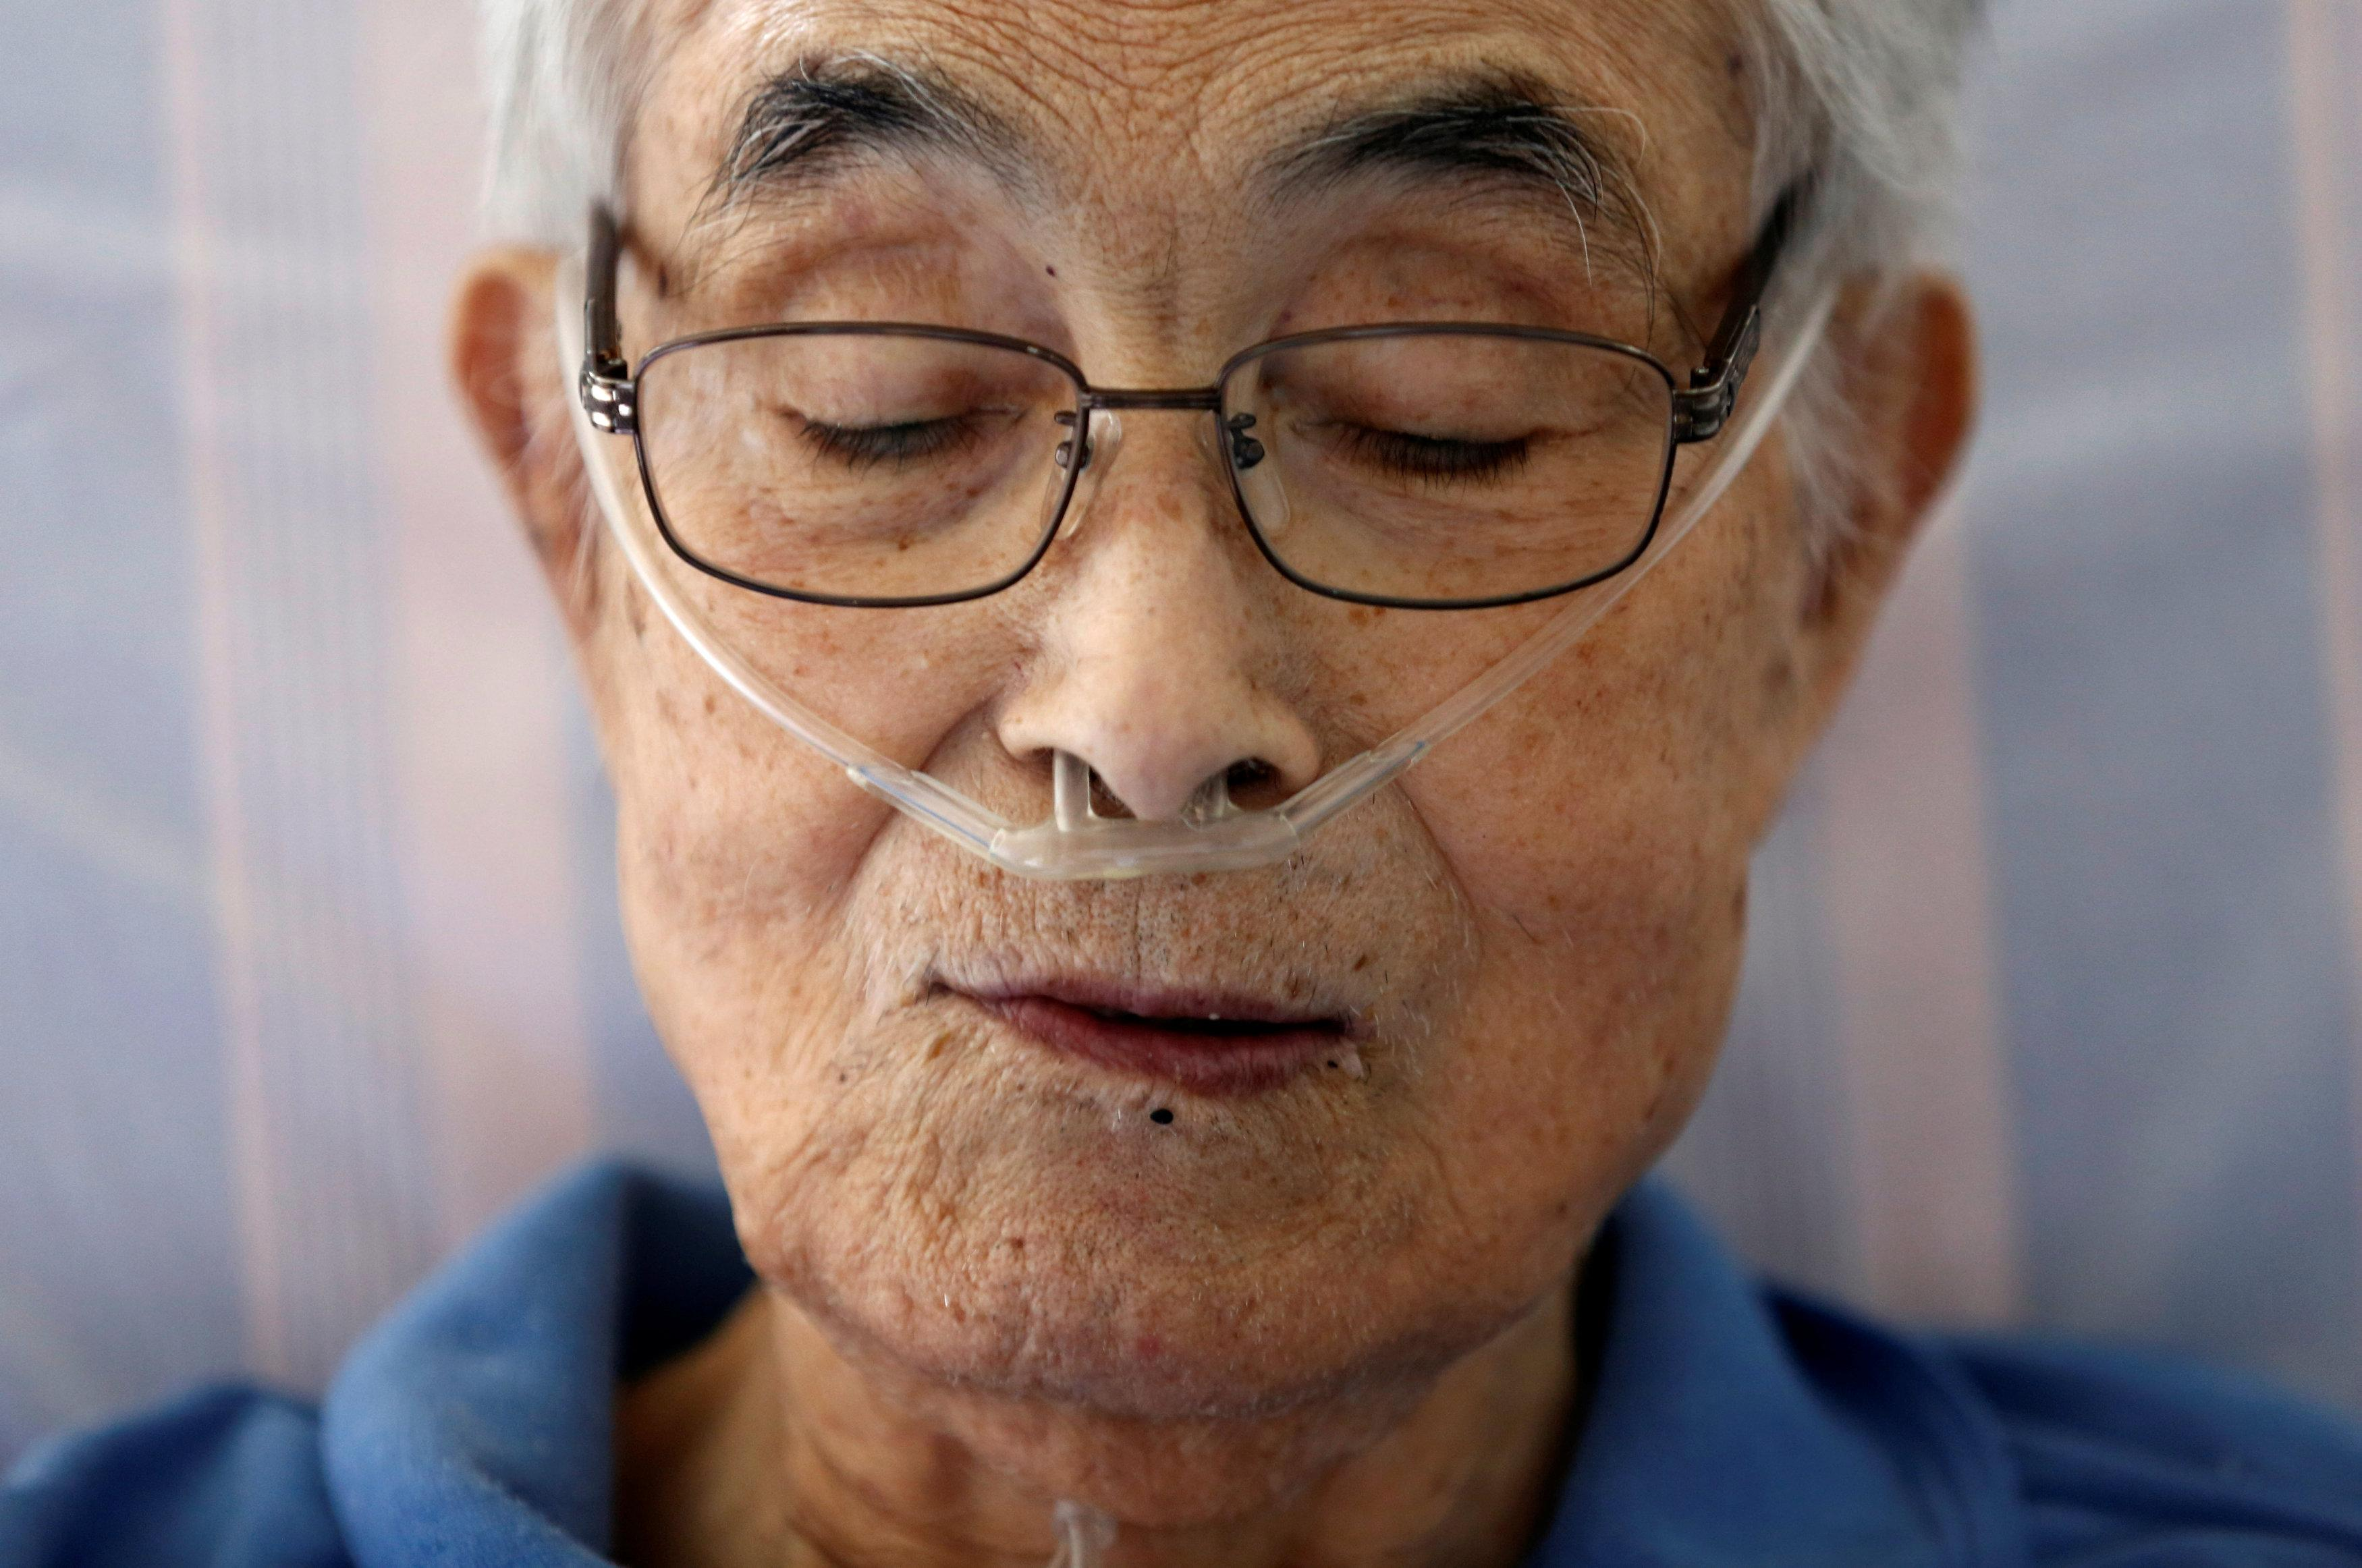 Katsuo Saito, 89, who has leukaemia, uses an oxygen tube as he rests at his house in Tokyo, Japan, September 8, 2017. Kim Kyung-Hoon